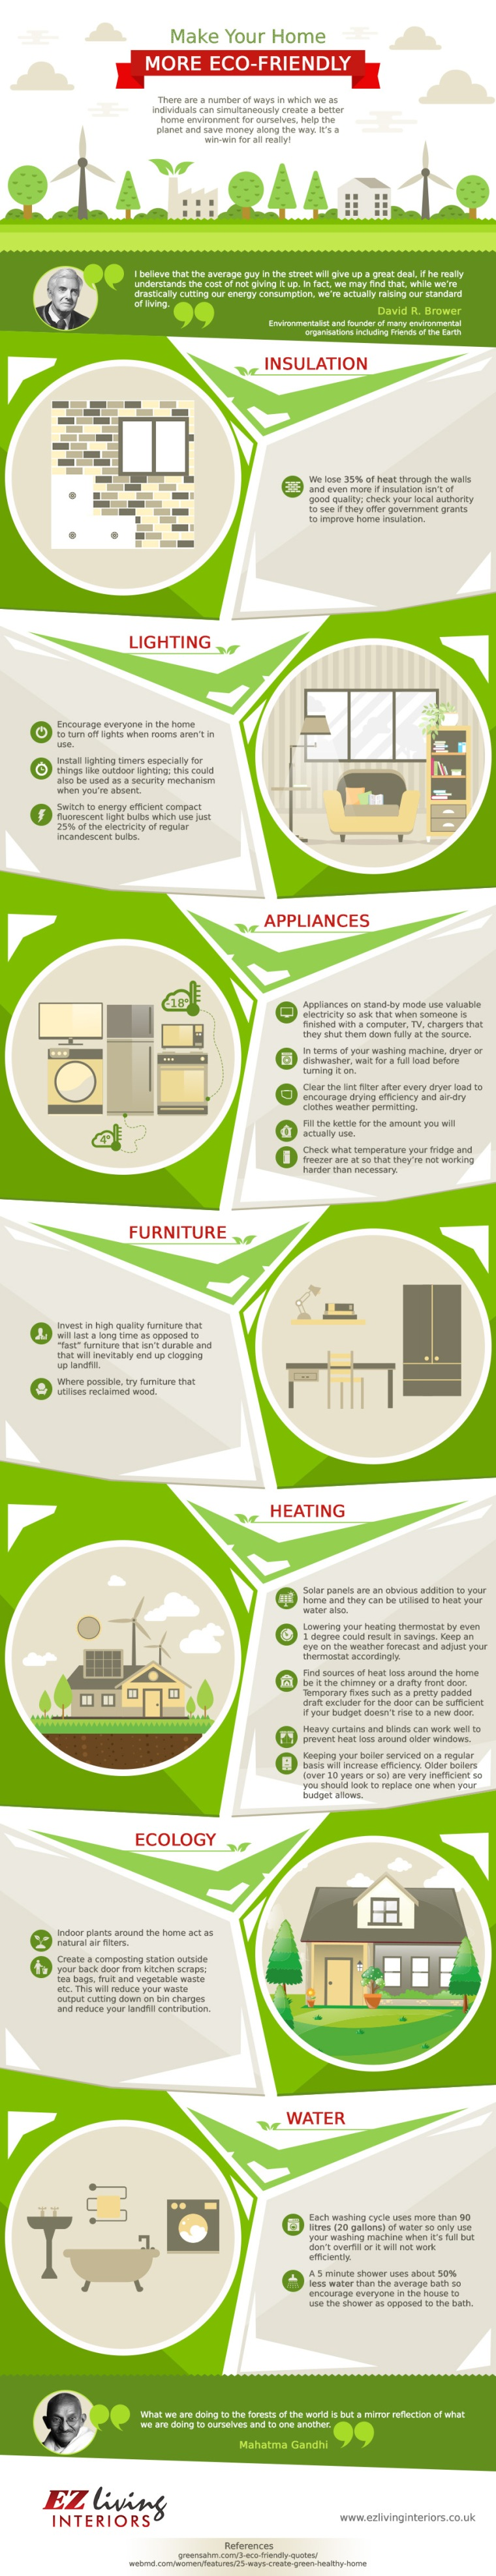 Eco-Friendly Ideas for a Homeowner [Infographic] | ecogreenlove